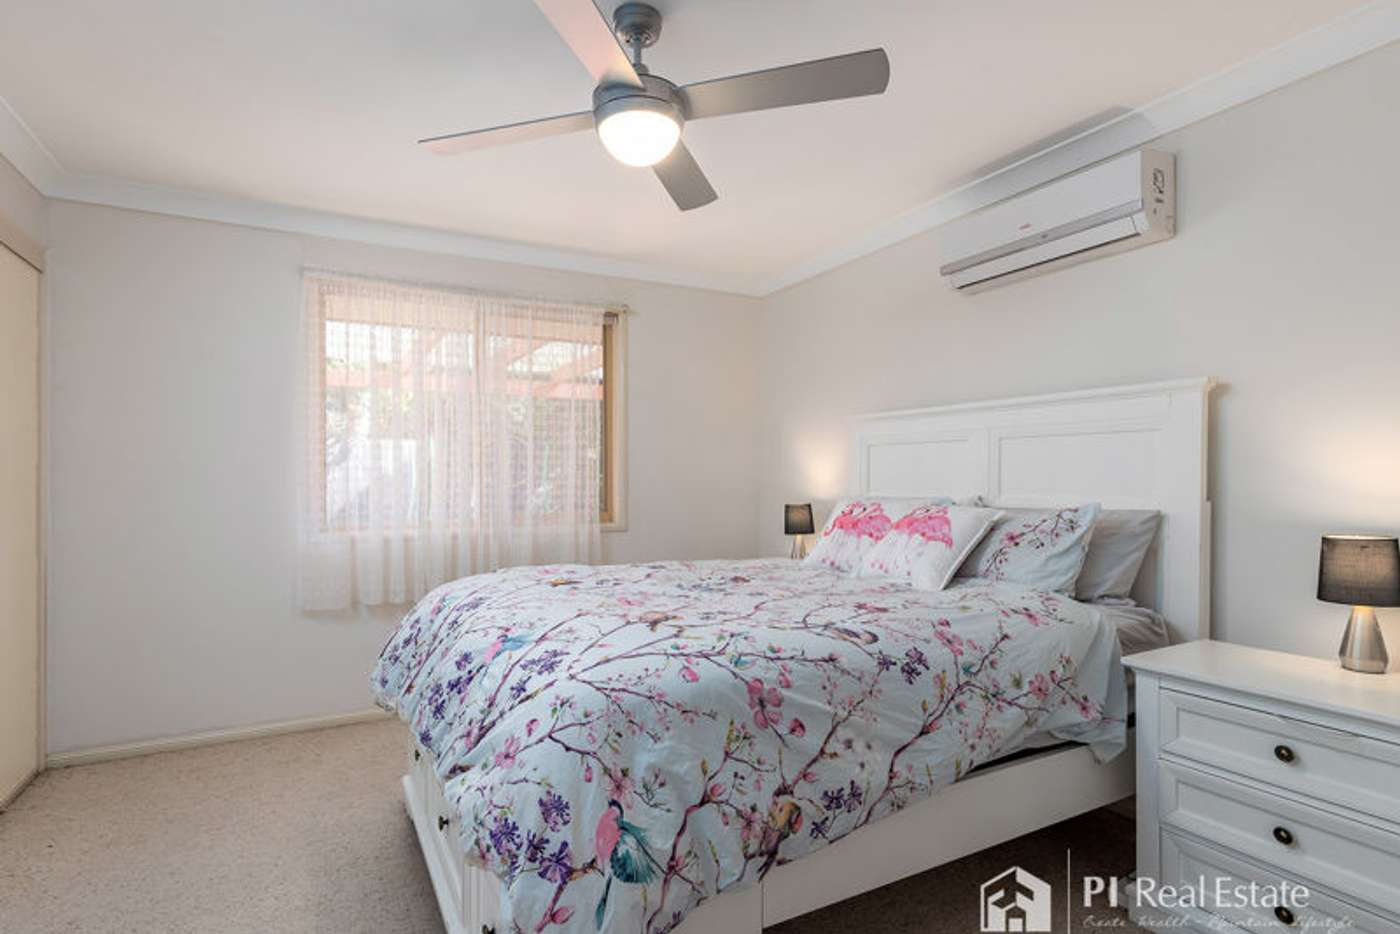 Fifth view of Homely house listing, 5 Henderson Road, Burpengary QLD 4505